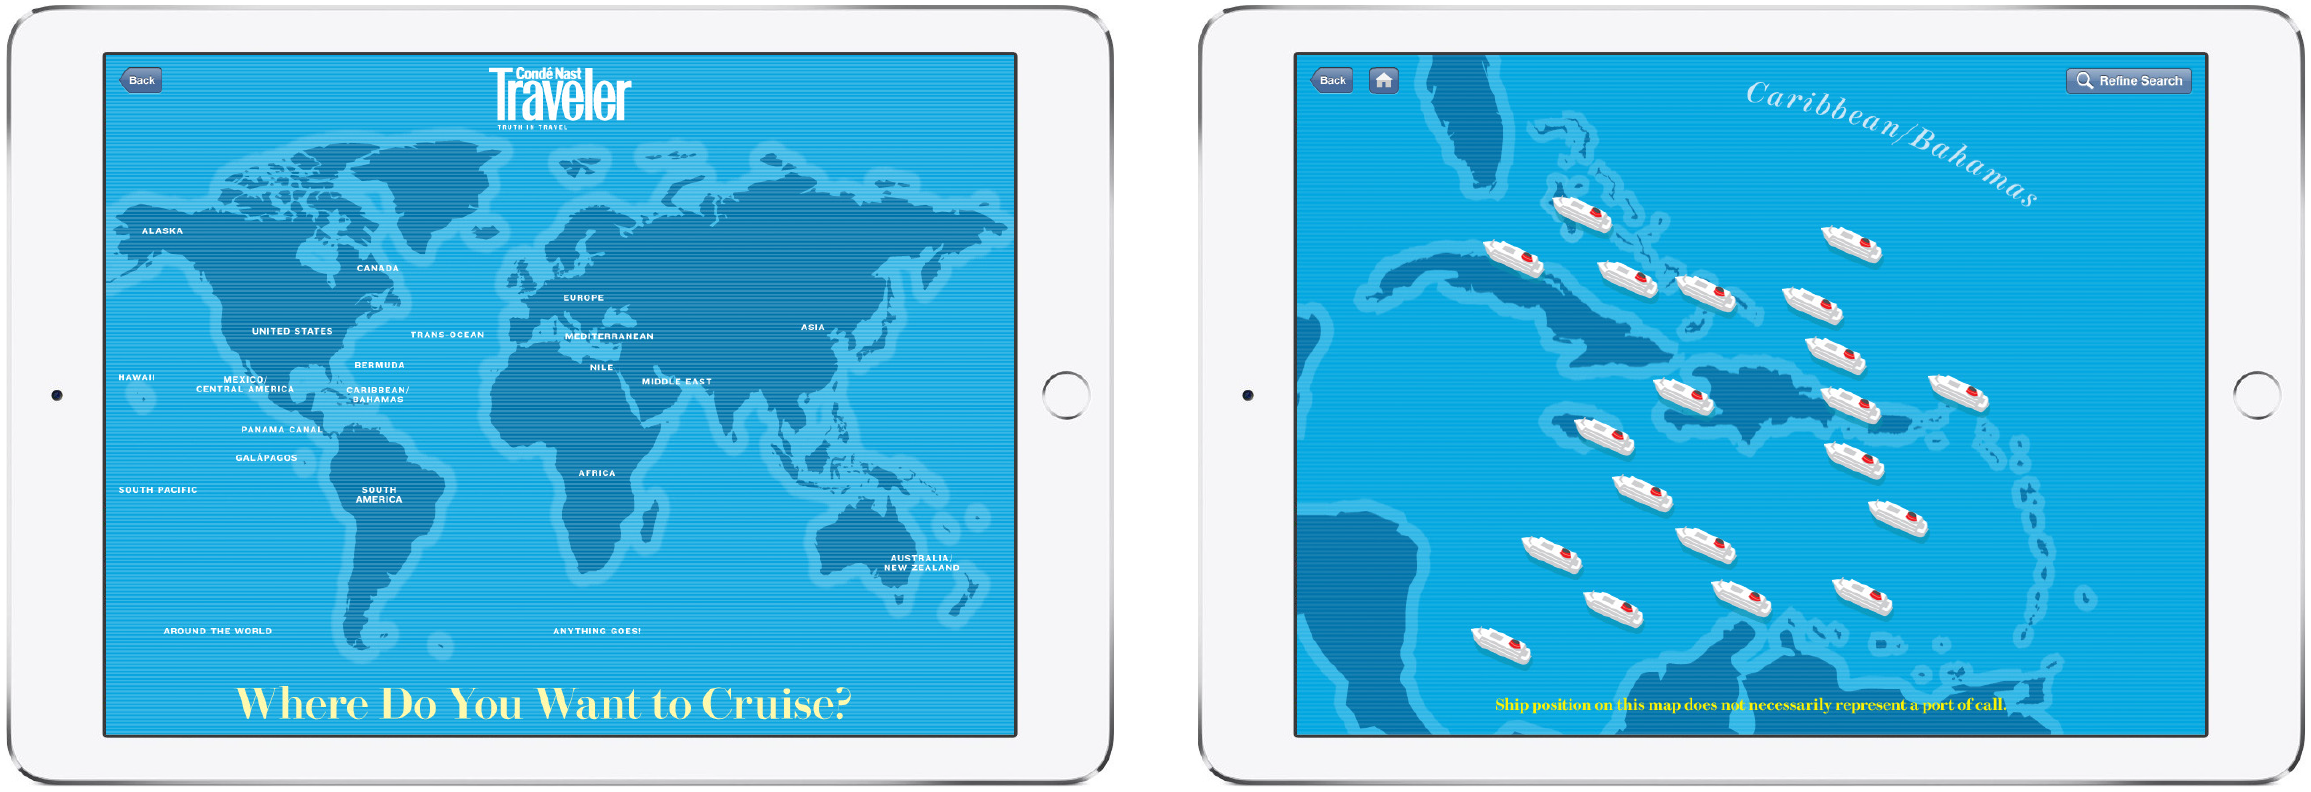 Cruise for iPad 1.png